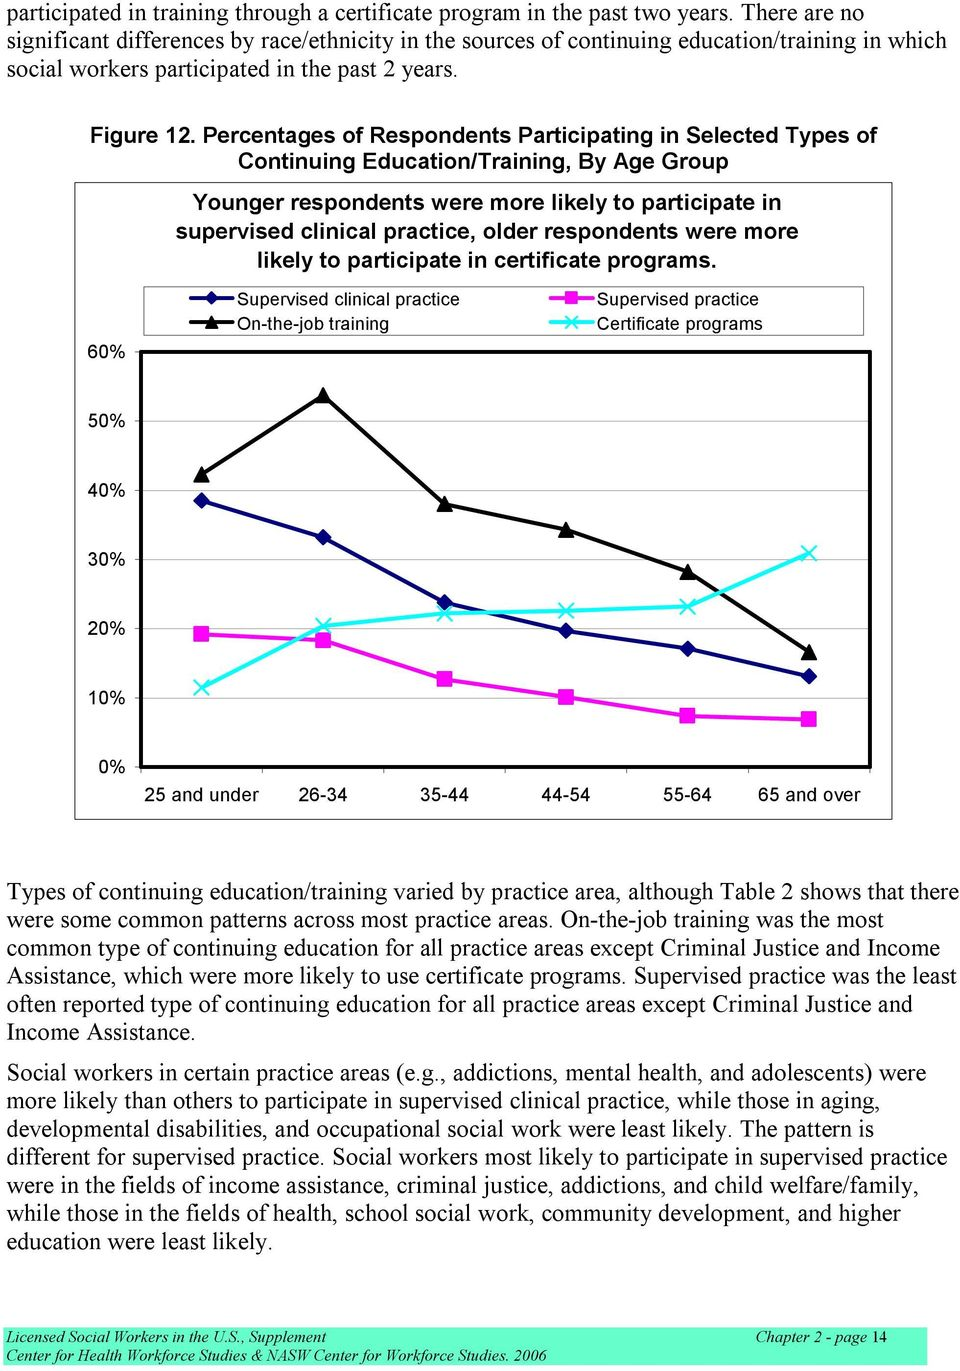 Percentages of Respondents Participating in Selected Types of Continuing Education/Training, By Age Group Younger respondents were more likely to participate in supervised clinical practice, older